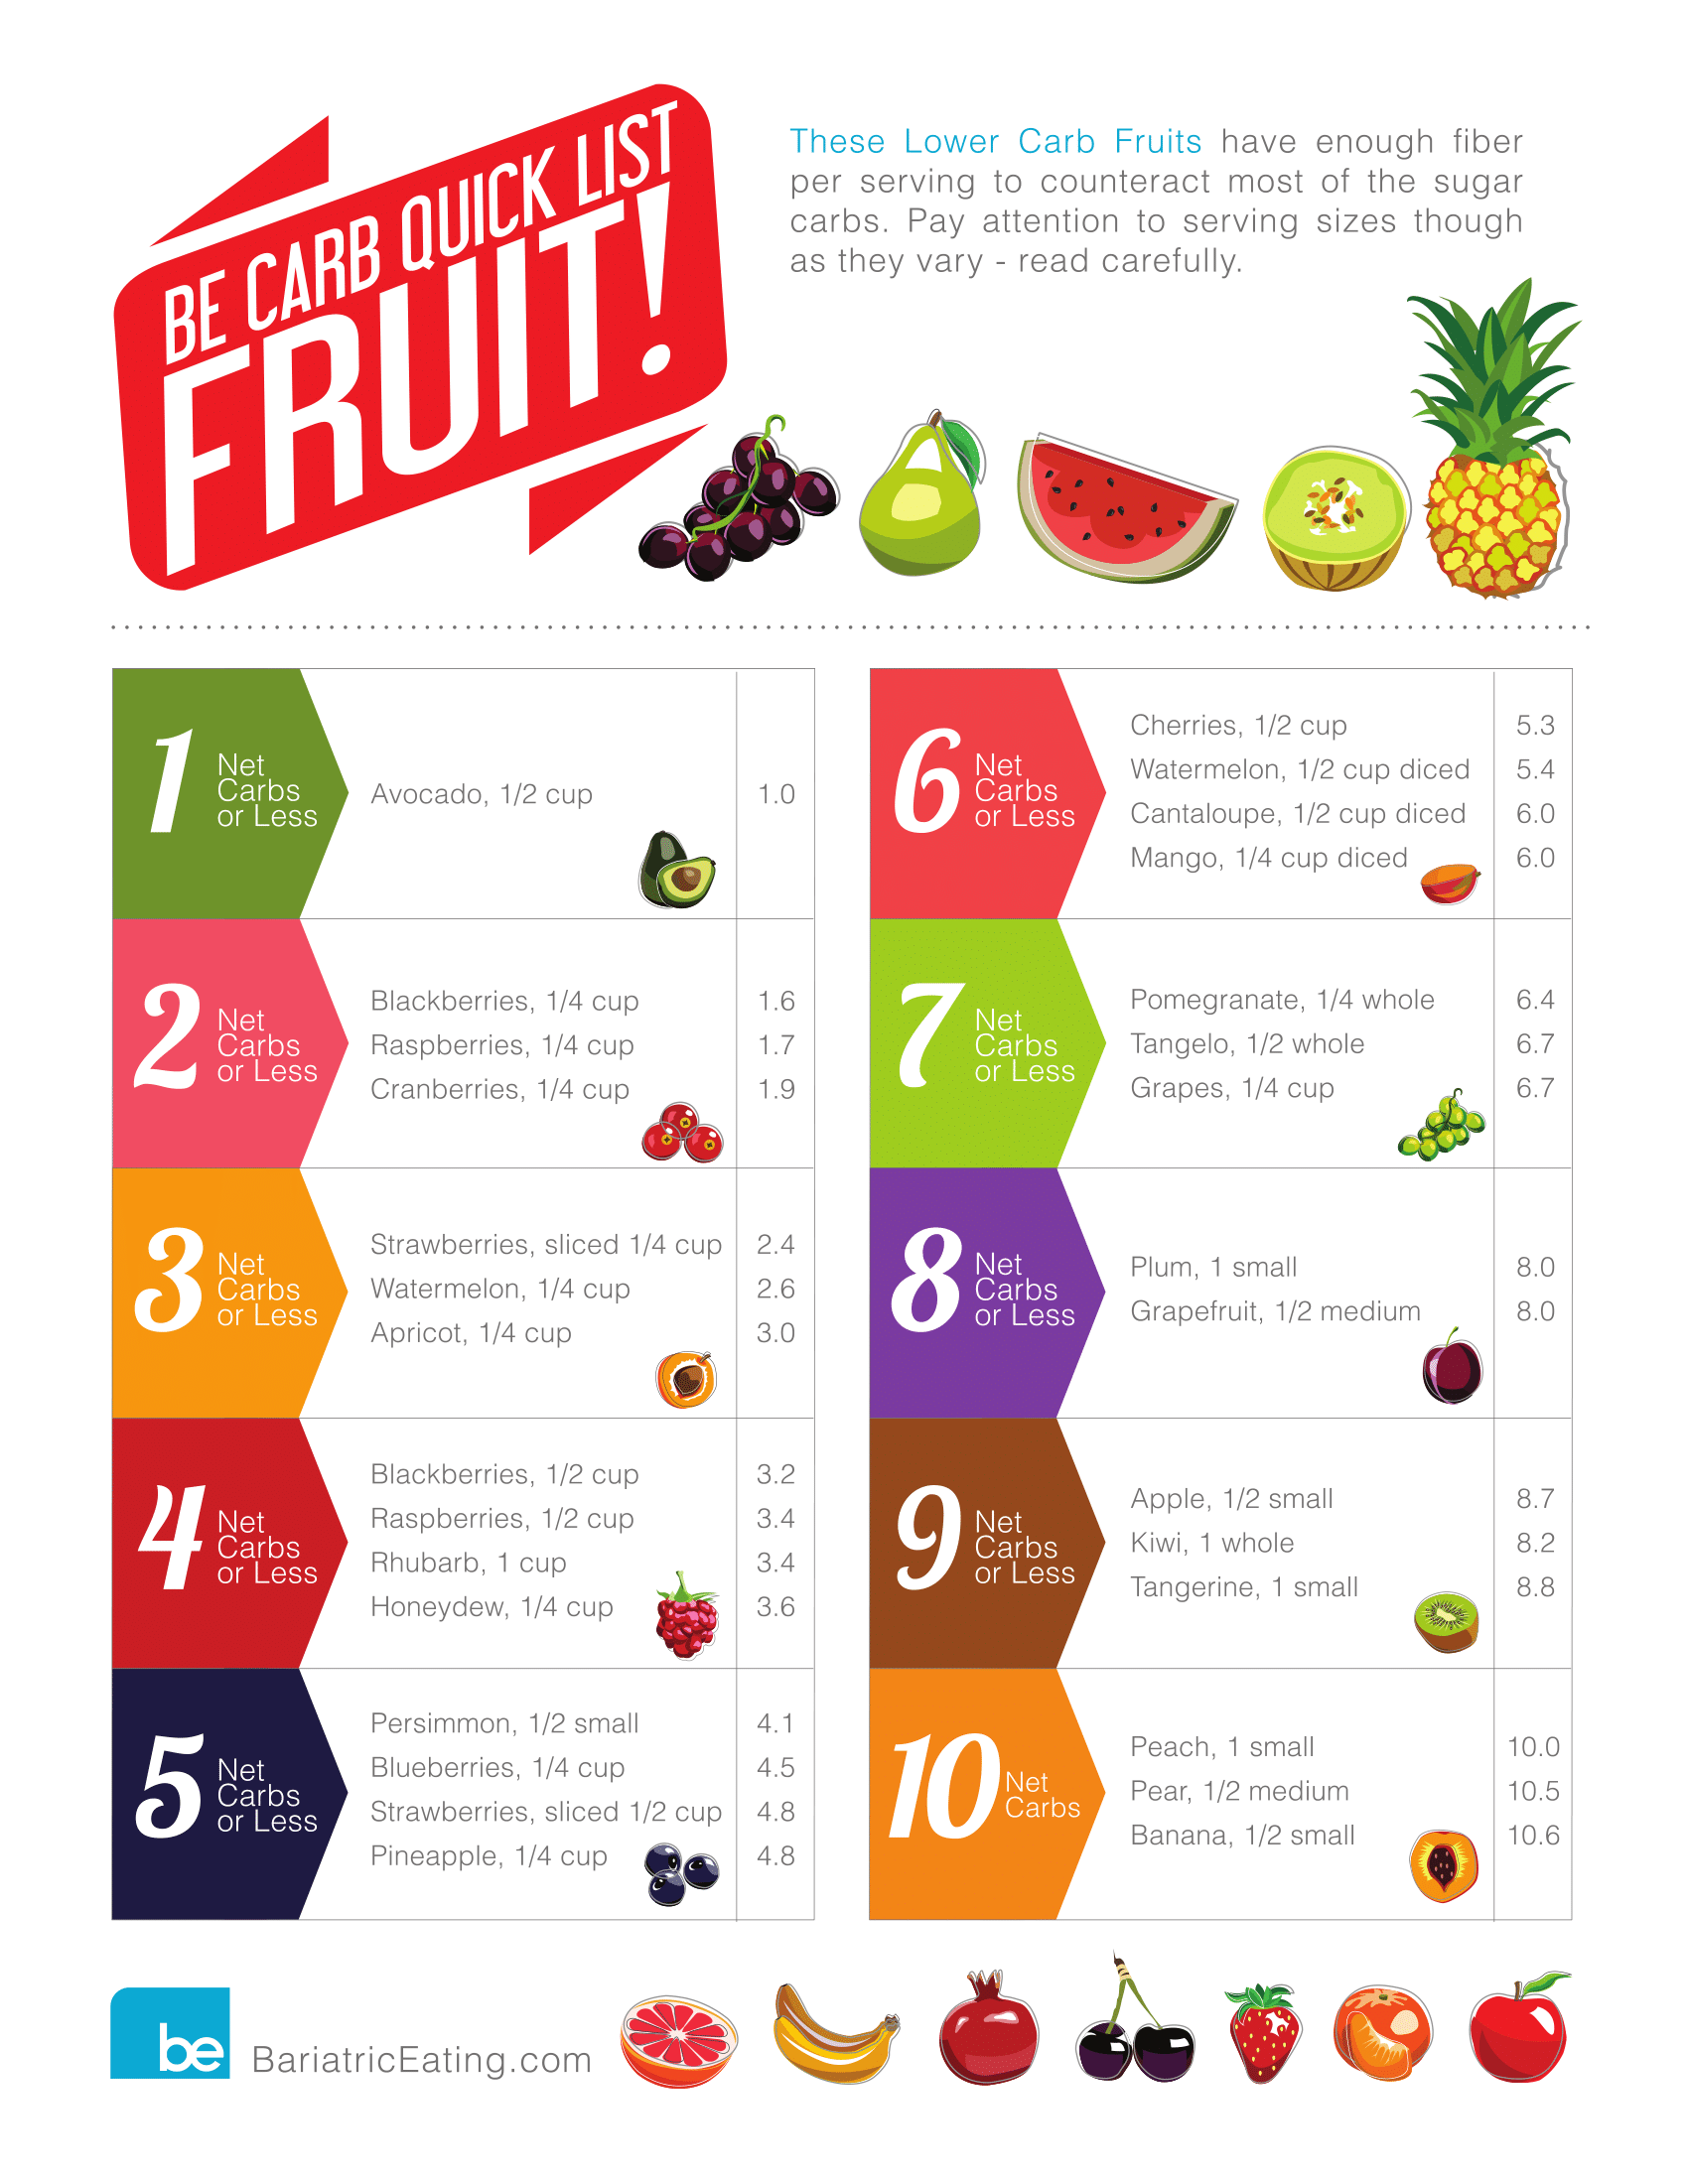 Bariatric Low Carb Fruit And Veg Keto Cheatsheet With Printable Pdf Studypk In 2020 Low Carb Fruit Low Carb Diet Food List Low Carb Fruit List